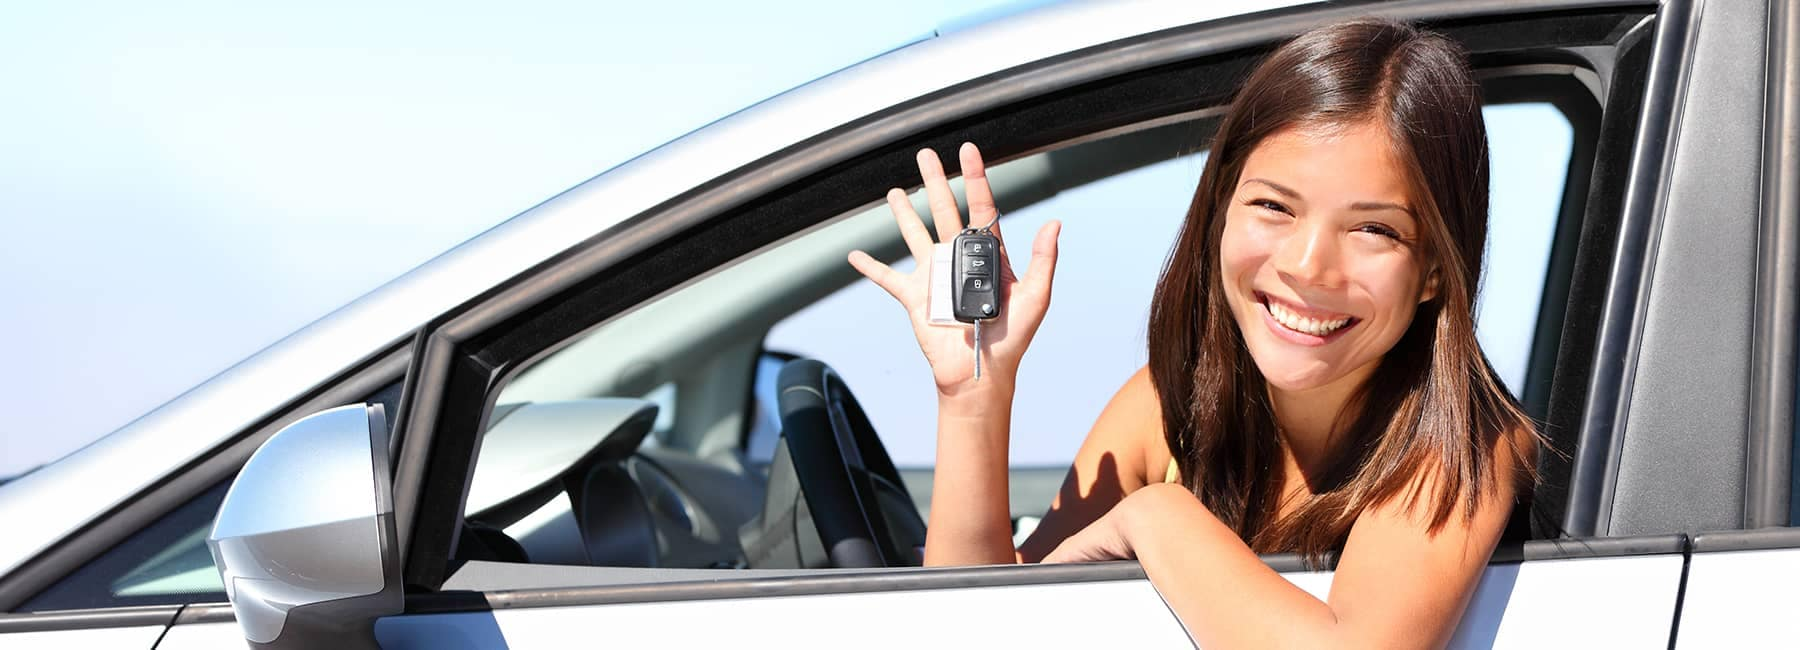 smiling car buyer holds keys in her hand in her new car